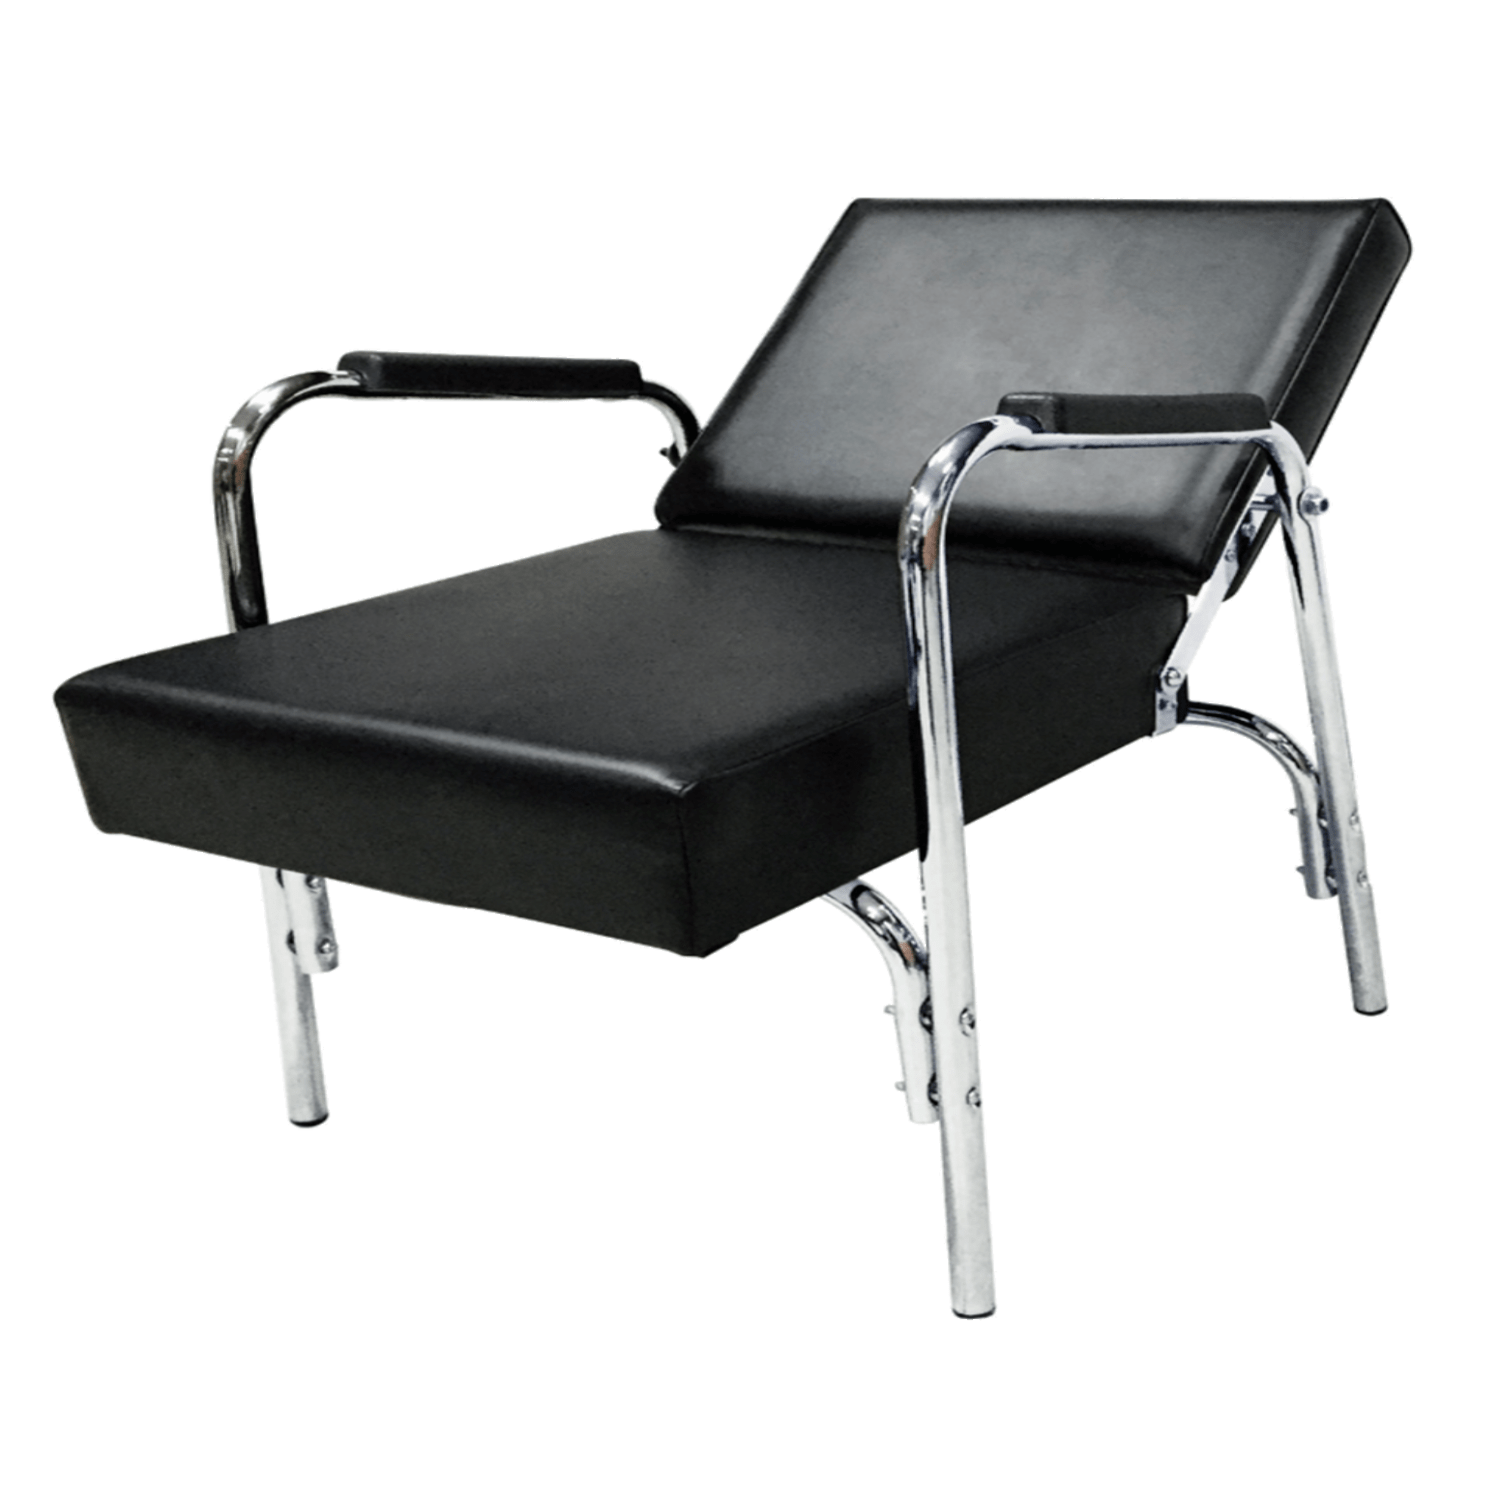 beauty salon chair barcelona knoll puresana auto recline shampoo